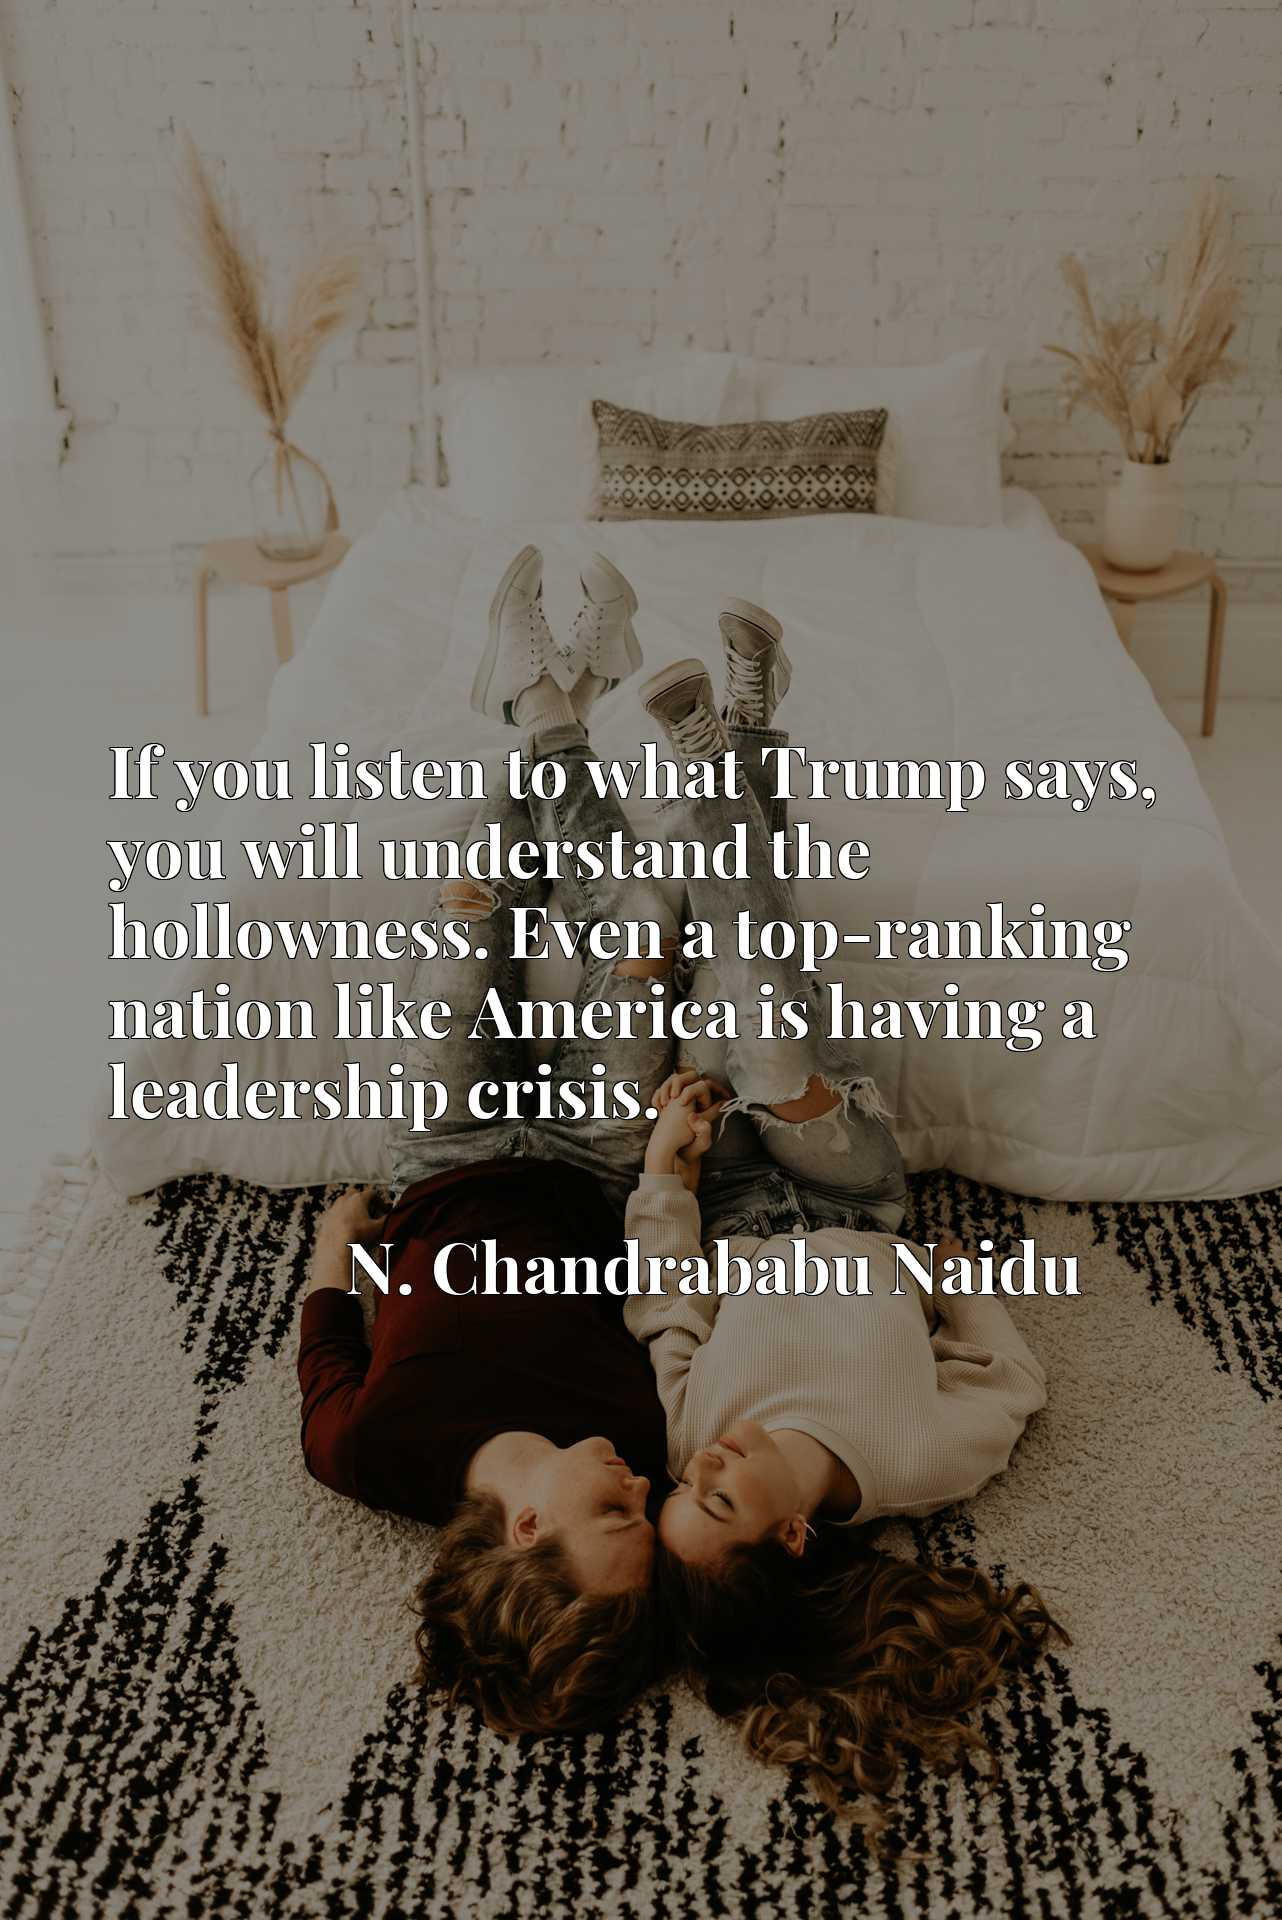 Quote Picture :If you listen to what Trump says, you will understand the hollowness. Even a top-ranking nation like America is having a leadership crisis.